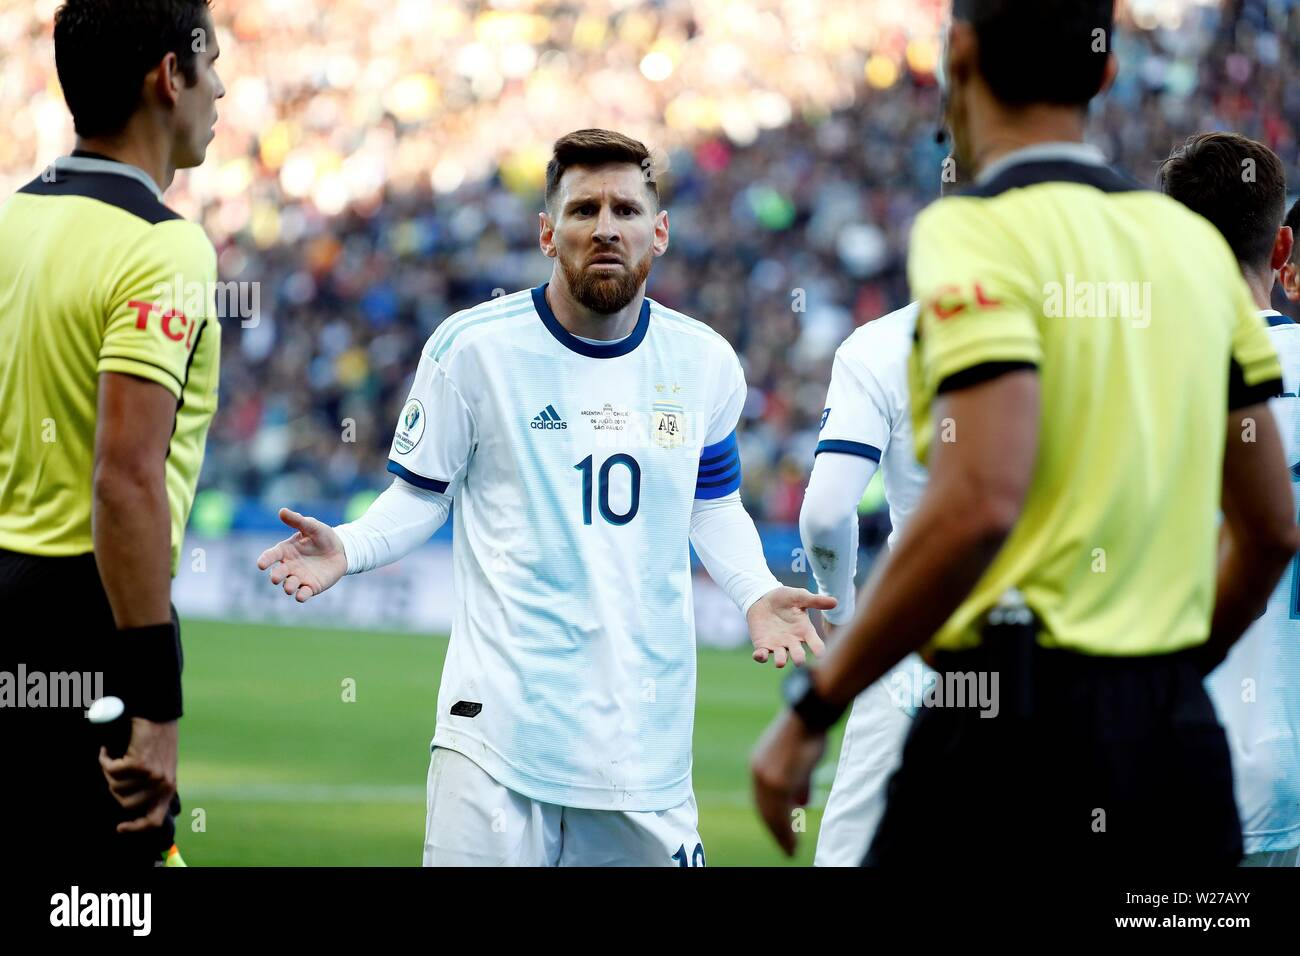 Sao Paulo, Brazil. 06th July, 2019. Argentine Lionel Messi argues with referees, during the Copa America 2019 3rd place soccer match between Argentina and Chile, at Arena Corinthians Stadium in Sao Paulo, Brazil, 6 July 2019. Credit: Sebastiao Moreira/EFE/Alamy Live News - Stock Image